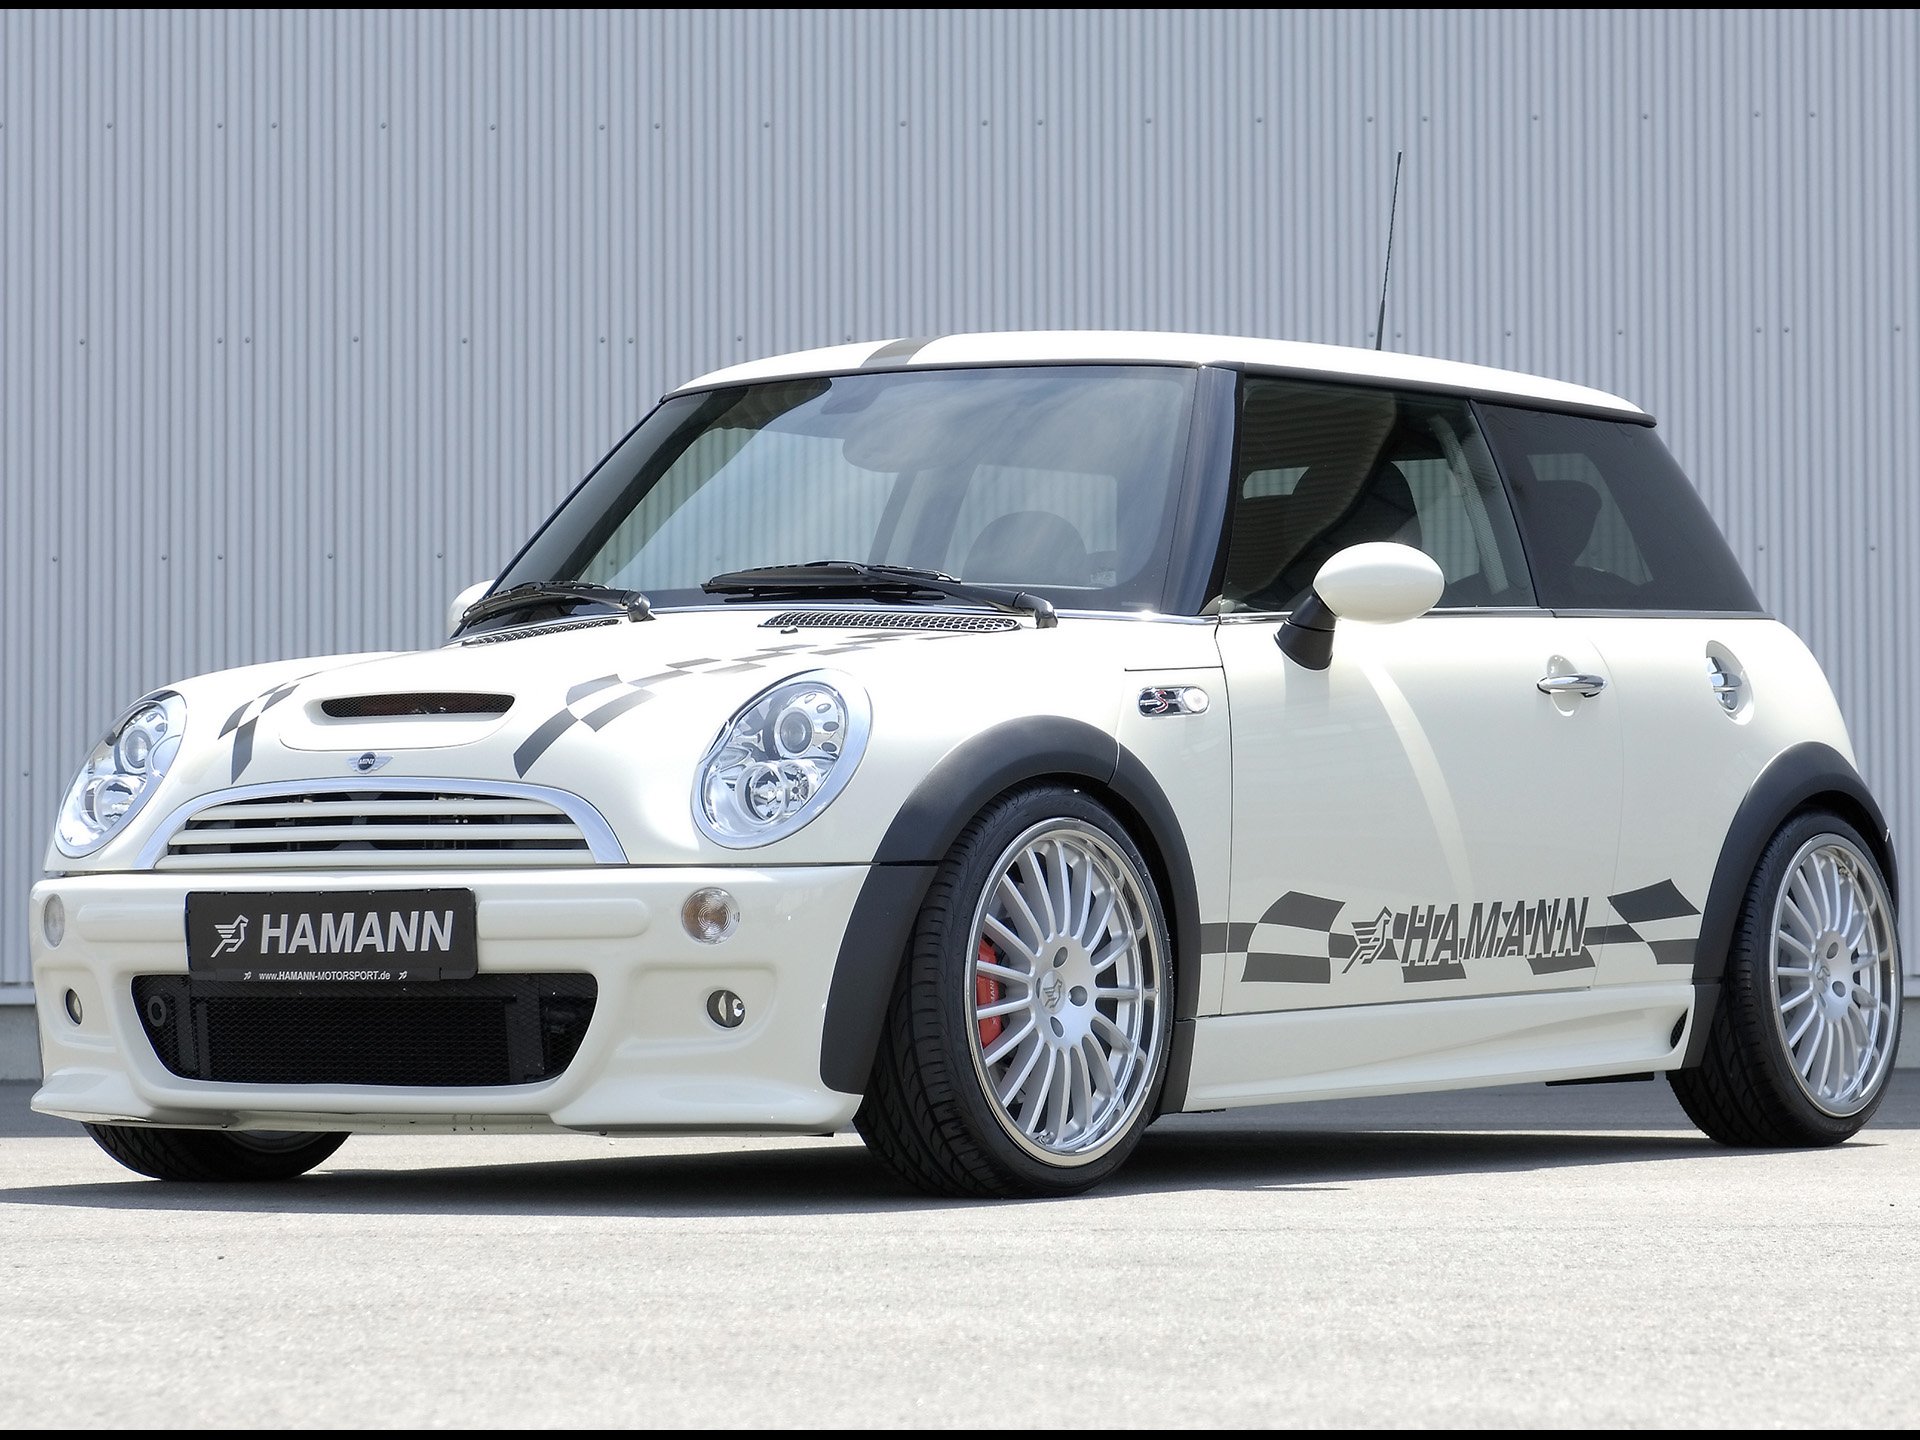 2006 Hamann Mini Cooper S - Side Angle - 1920x1440 - Wallpaper